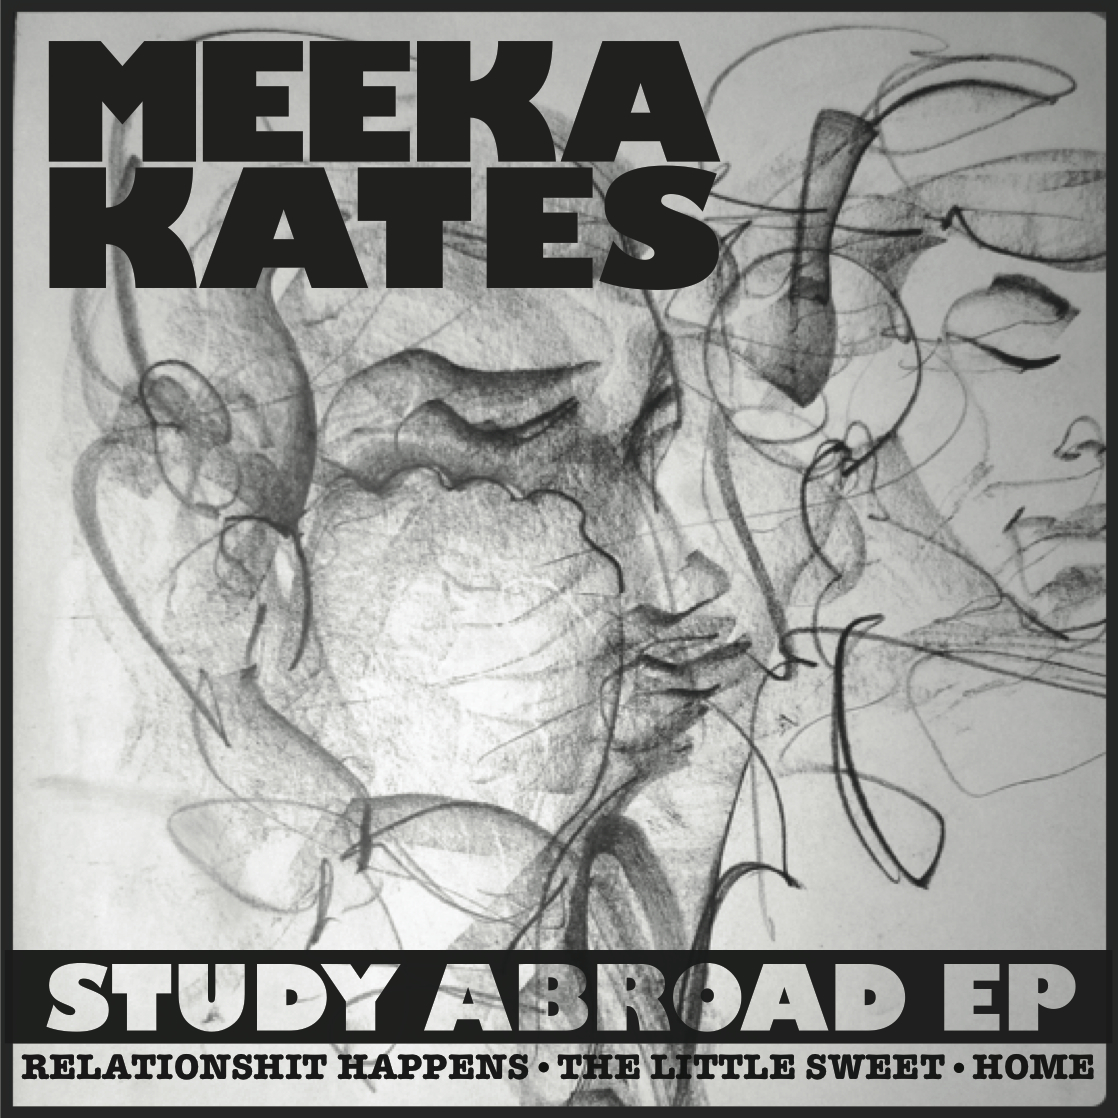 Meeka Kates EP cover